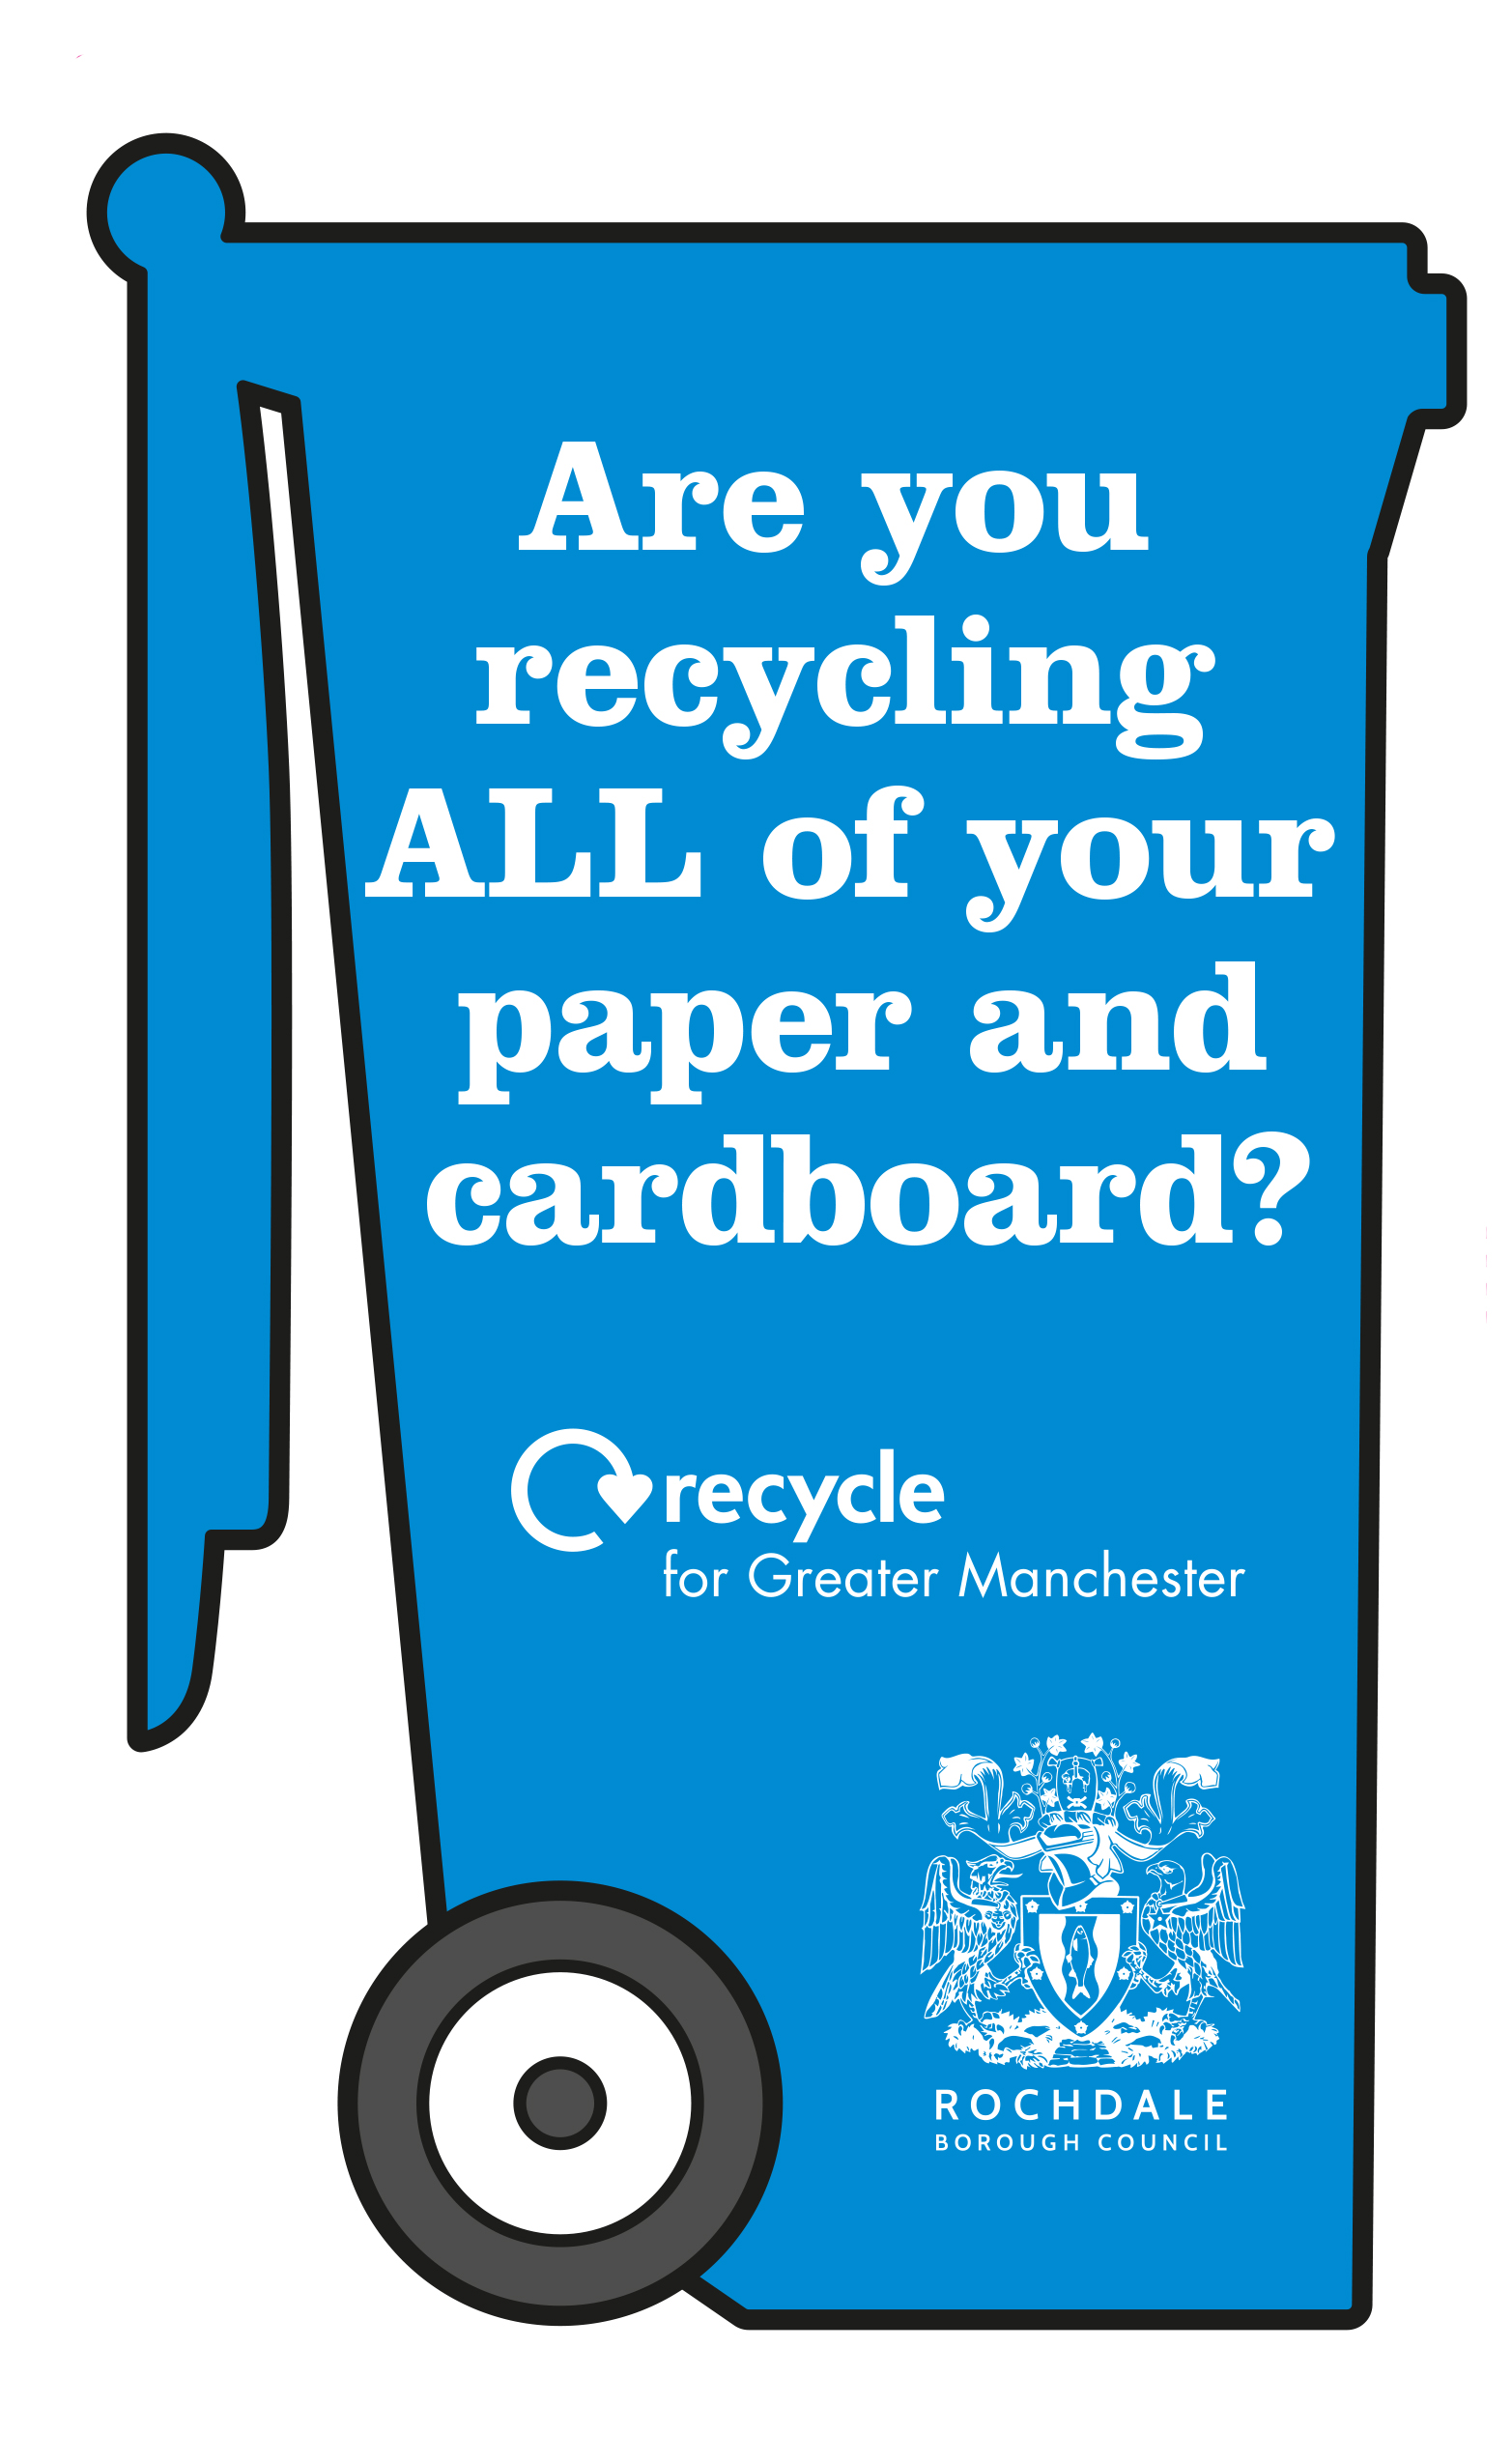 Rochdale Let's recycle more leaflet